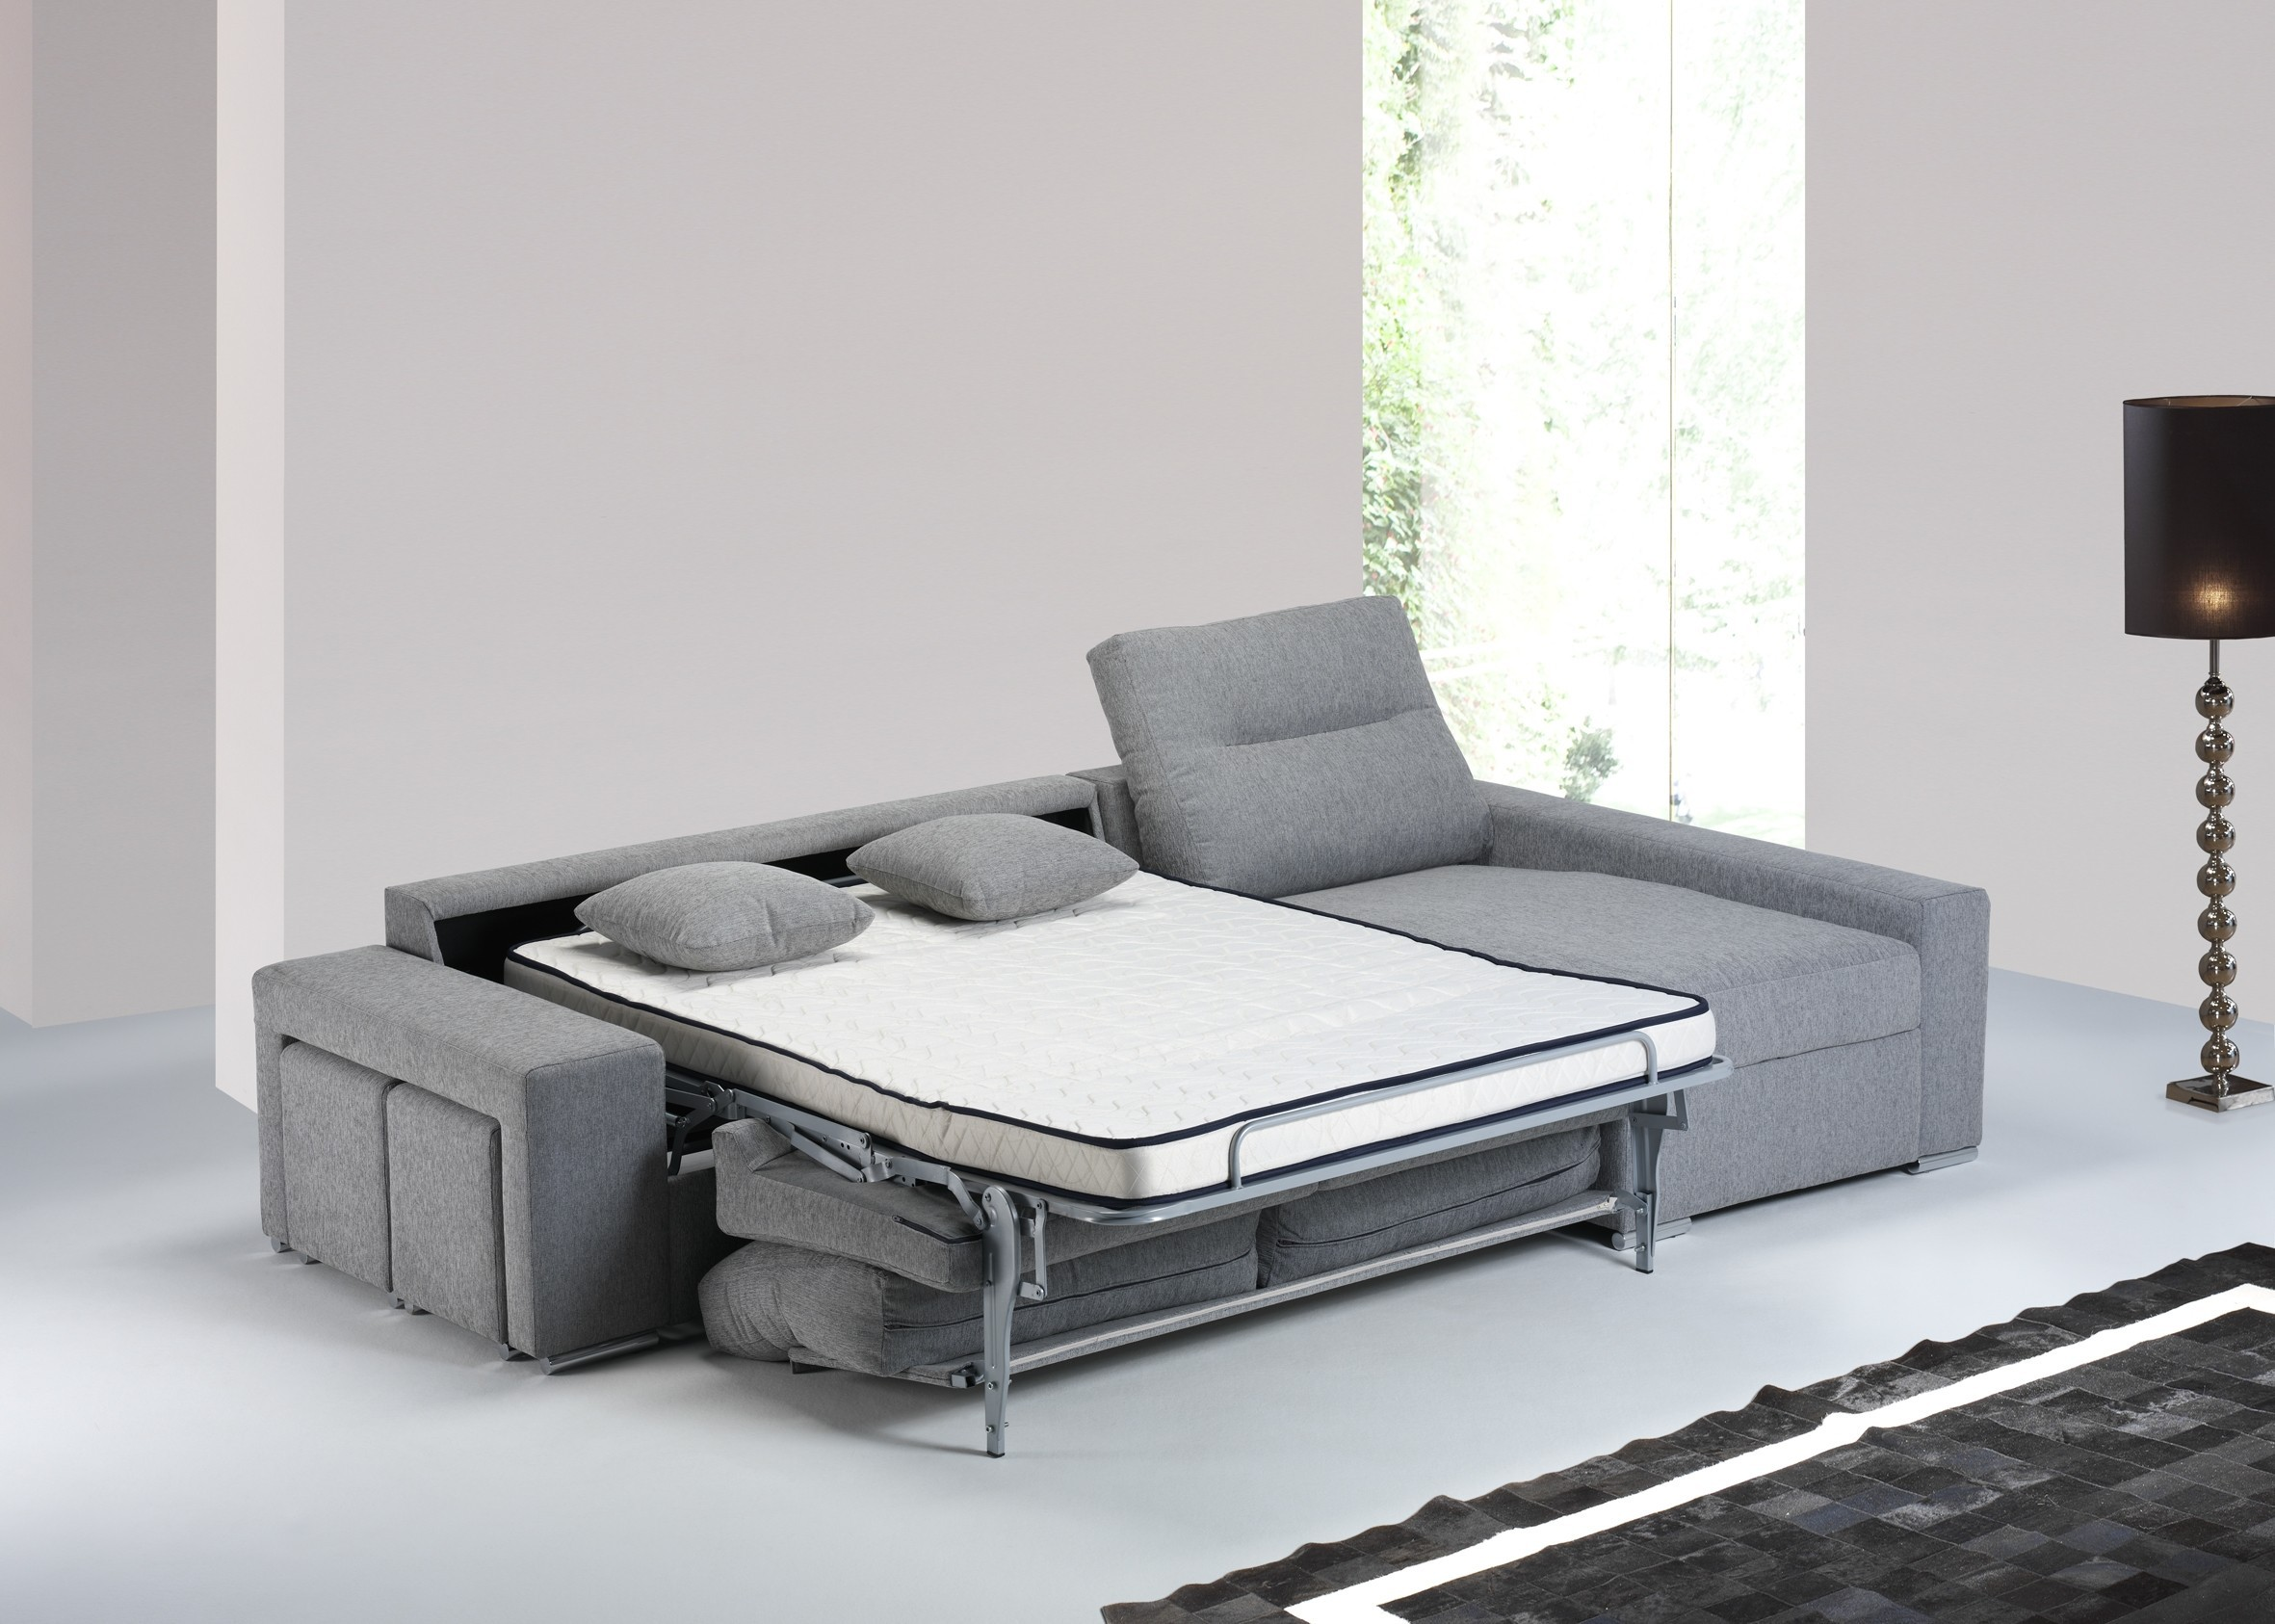 Canape lit d co royal sofa id e de canap et meuble maison for Canape companies